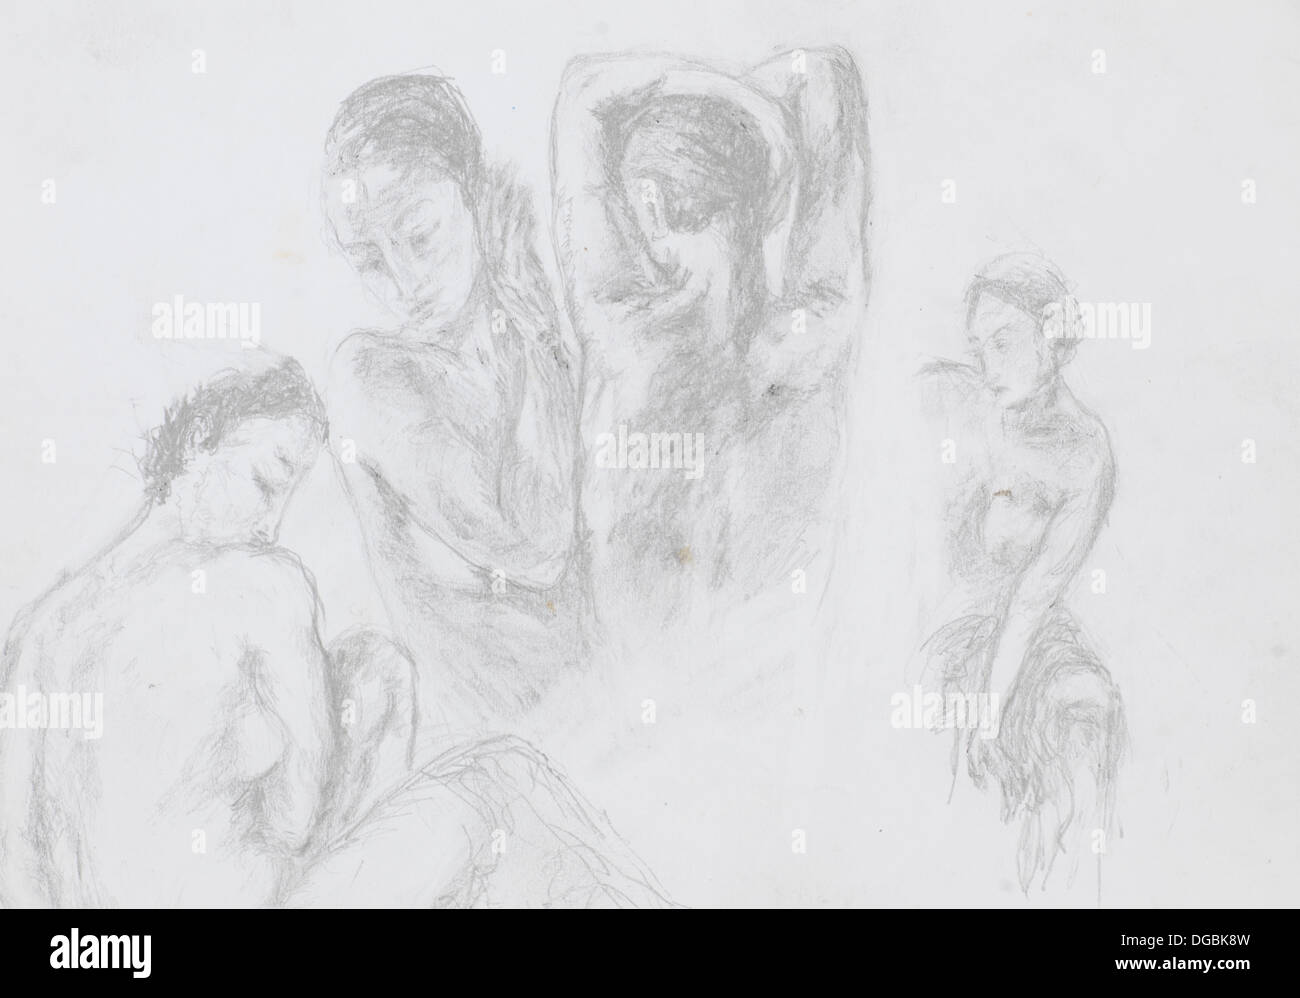 Hand drawn illustration of group of naked women pencil technique